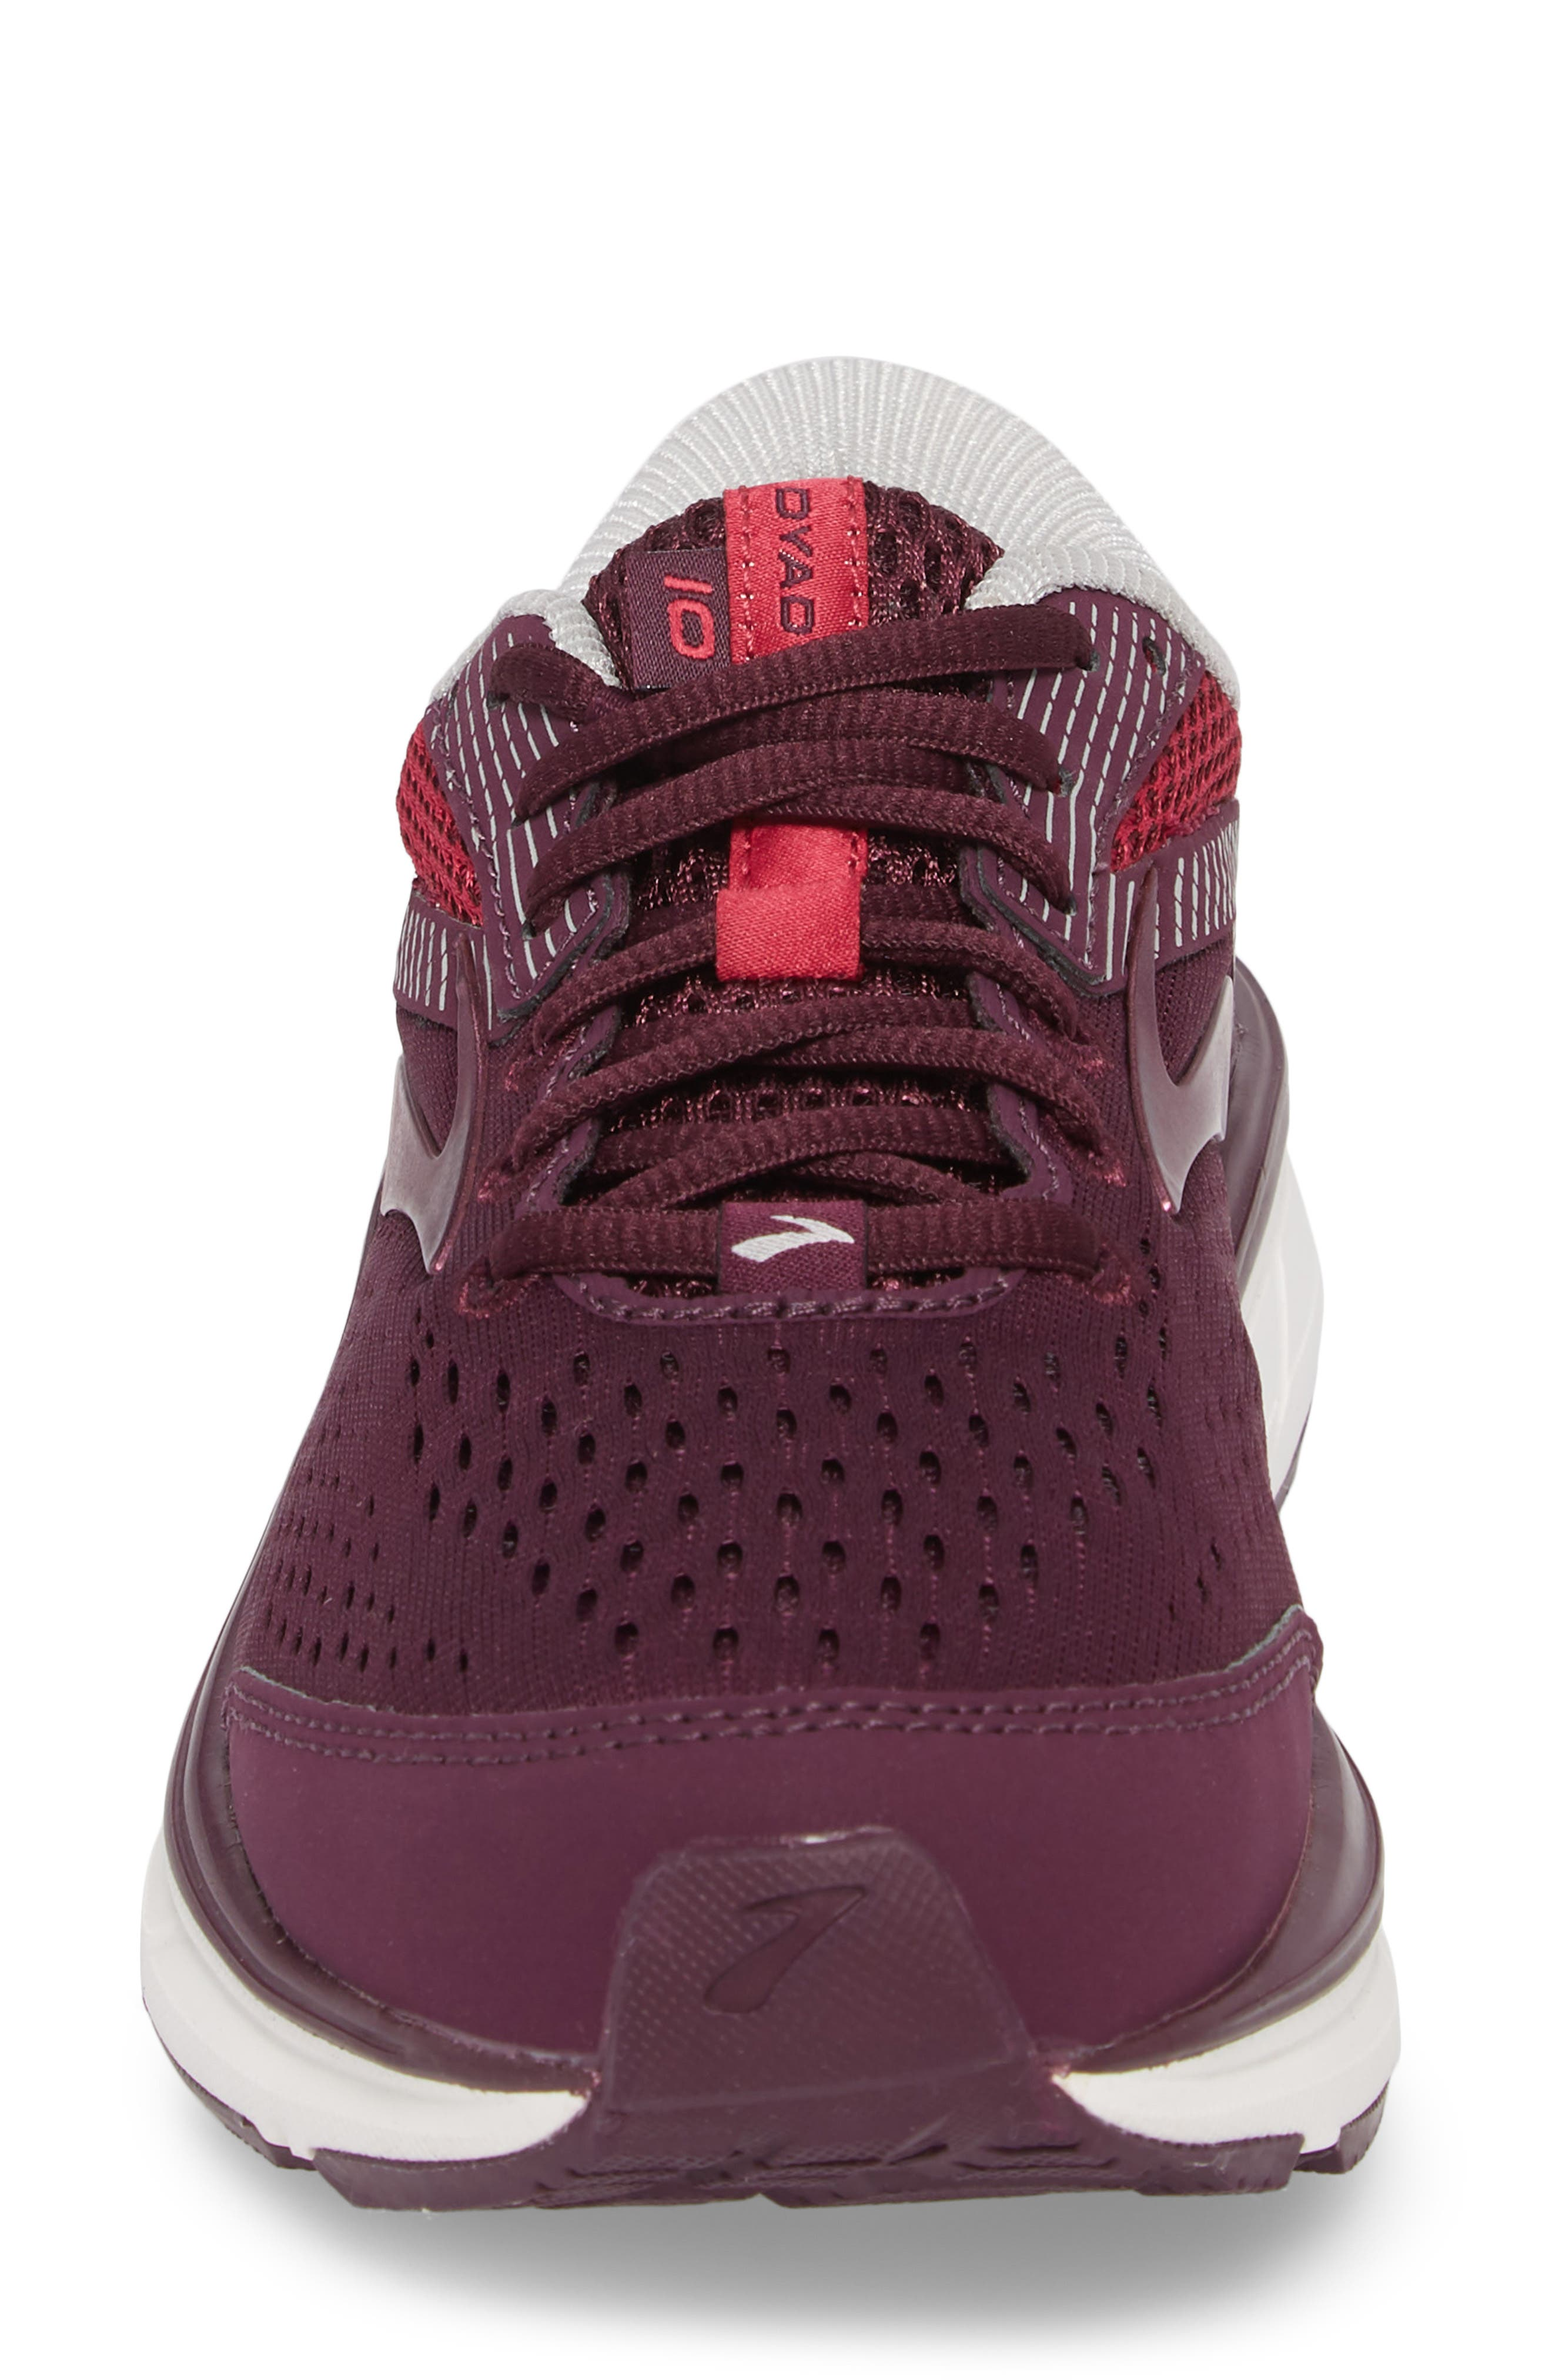 Dyad 10 Running Shoe,                             Alternate thumbnail 4, color,                             PURPLE/ PINK/ GREY